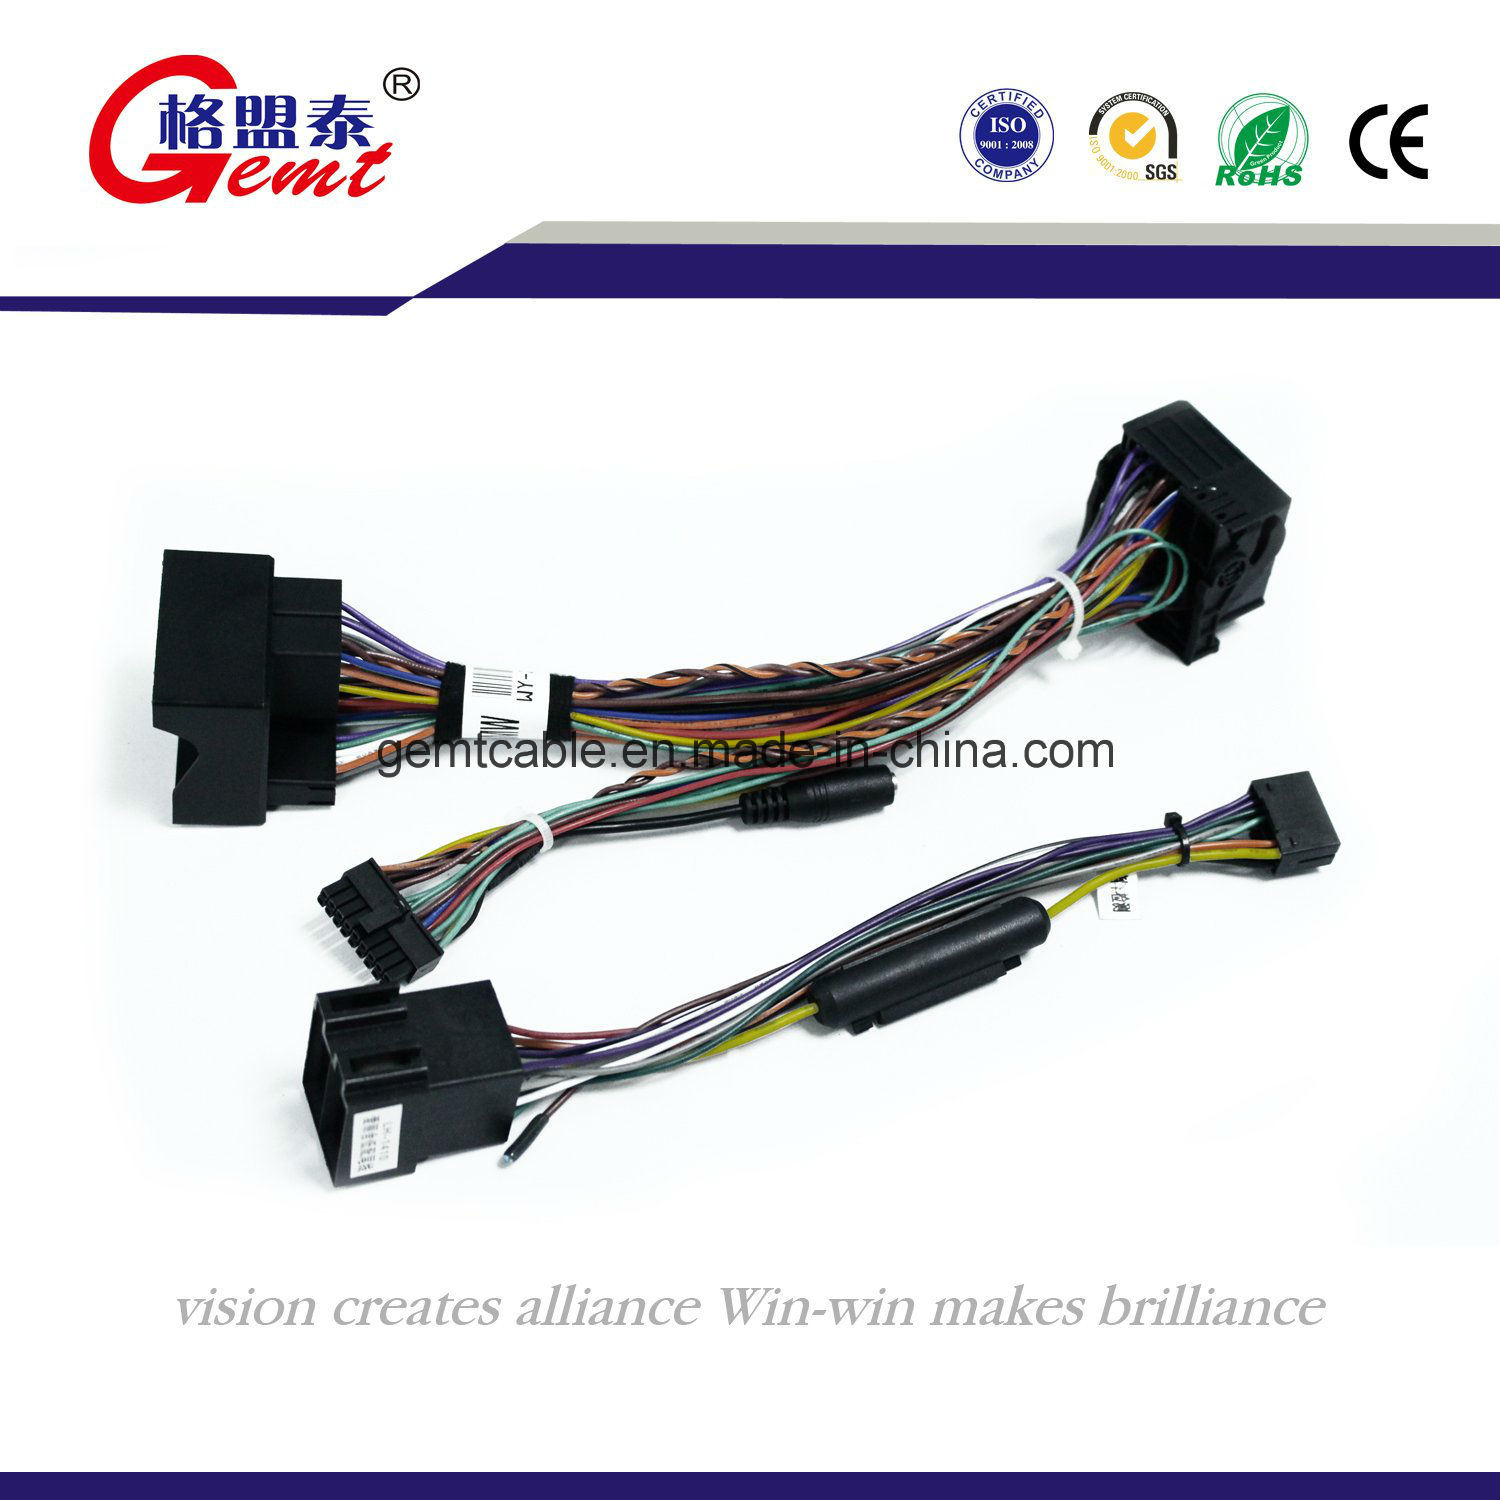 Electric Wiring Harness Manufacturers Library China Professional Relatively Reasonable Price With High Quality Wire